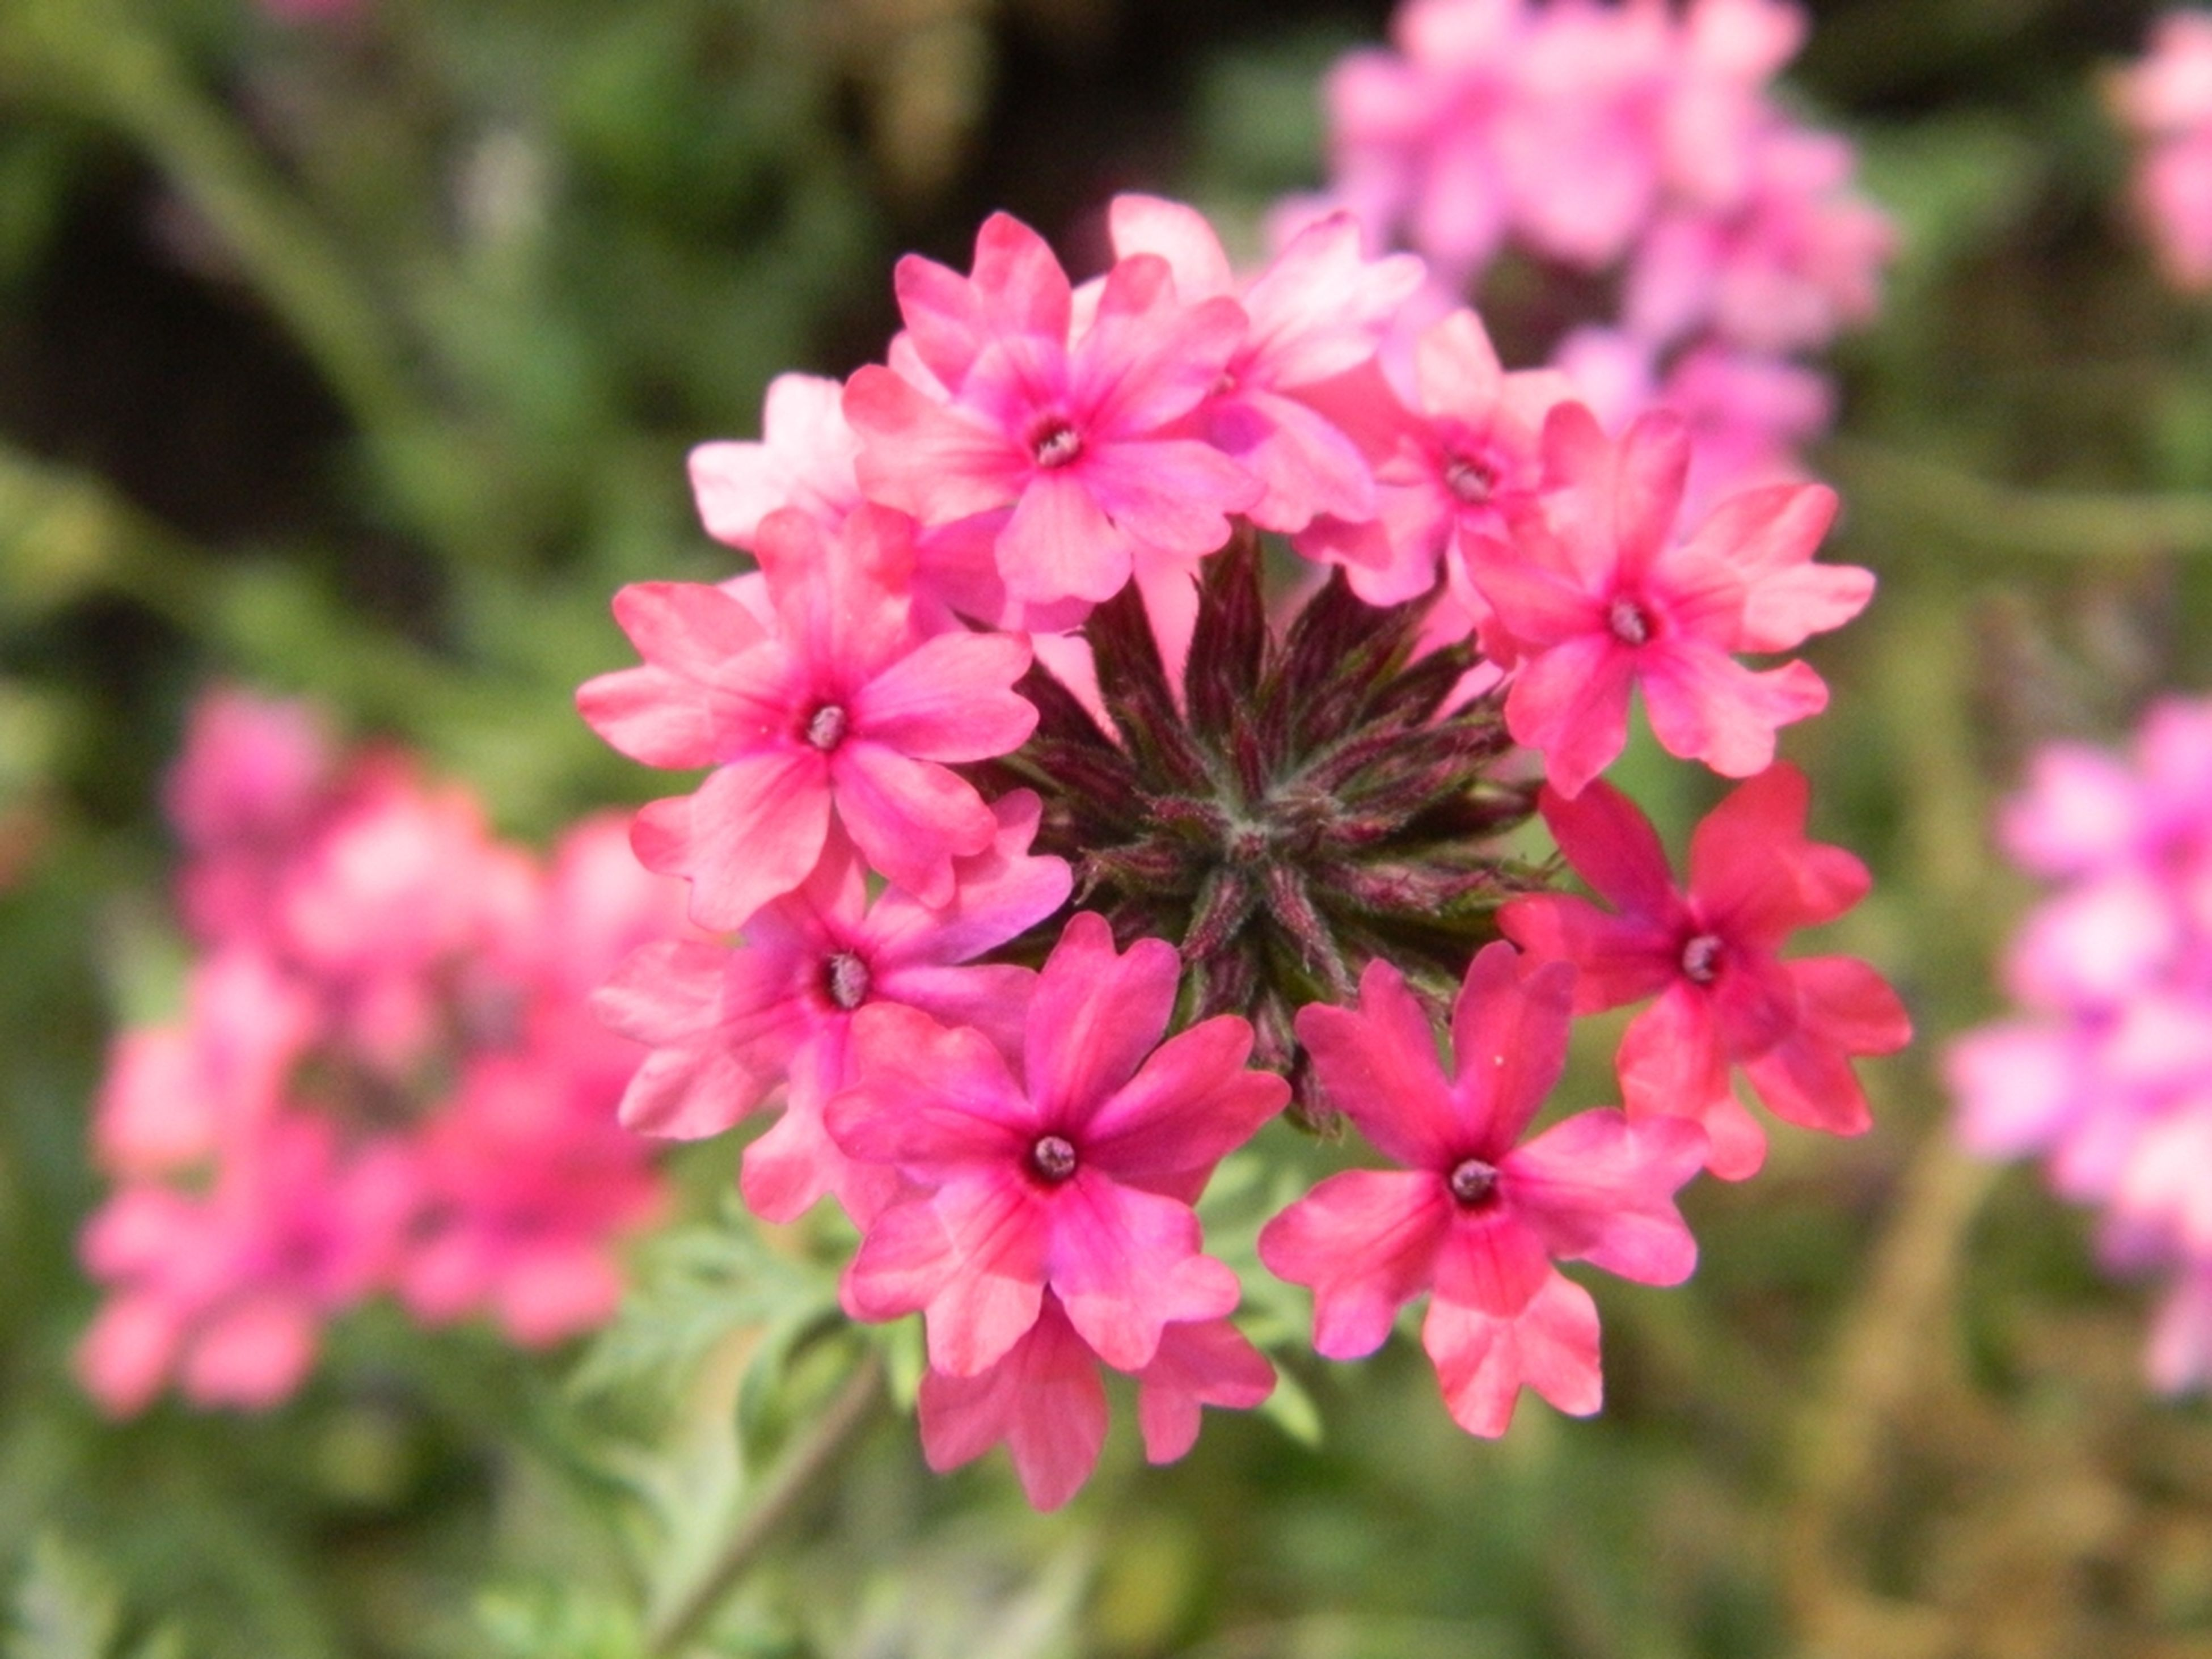 flower, freshness, pink color, fragility, petal, growth, beauty in nature, focus on foreground, flower head, close-up, nature, blooming, pink, in bloom, plant, park - man made space, outdoors, day, selective focus, blossom